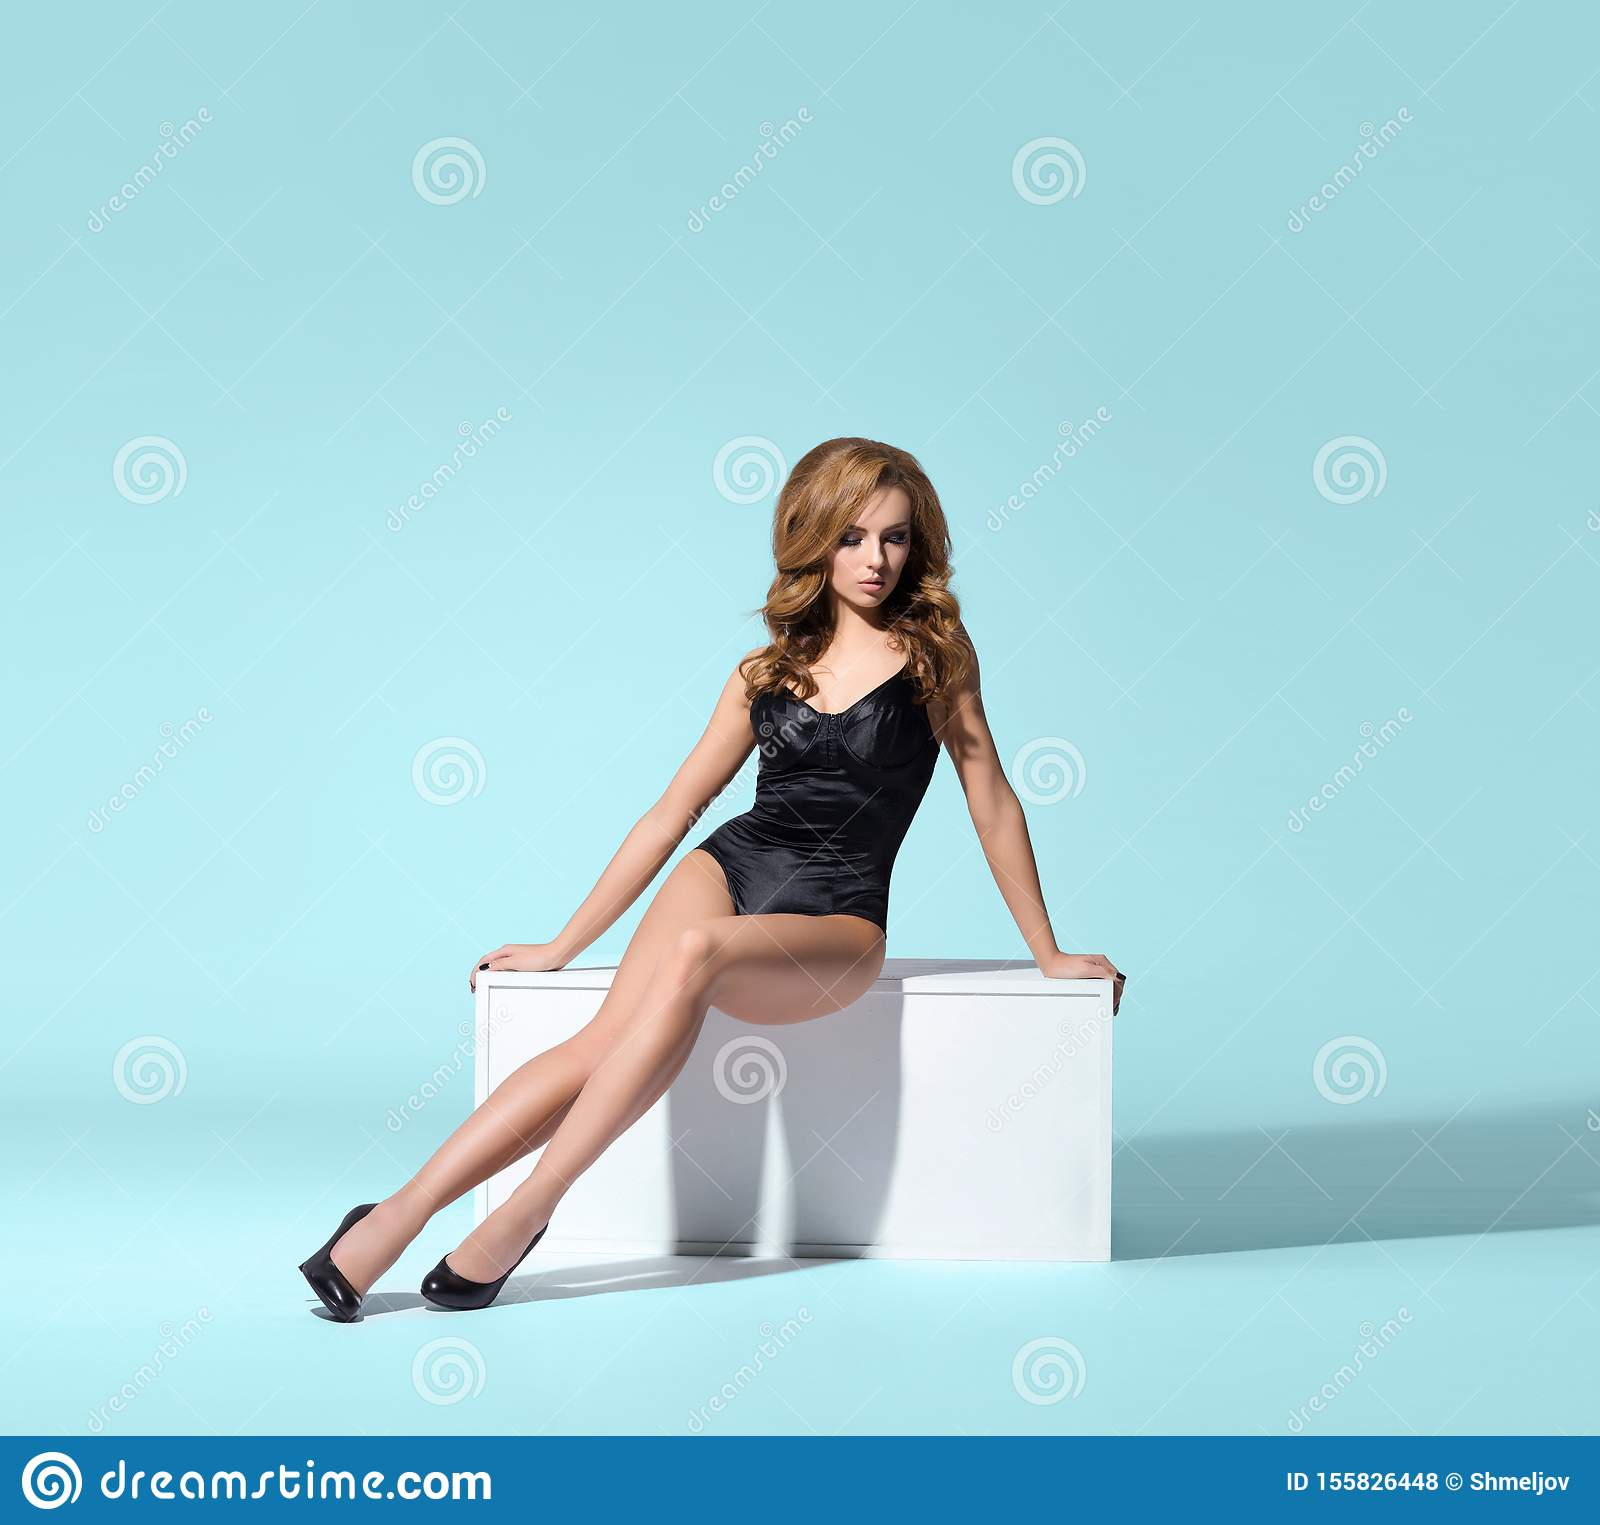 Young beautiful woman posing in lingerie over colored background in studio. Girl in underwear.